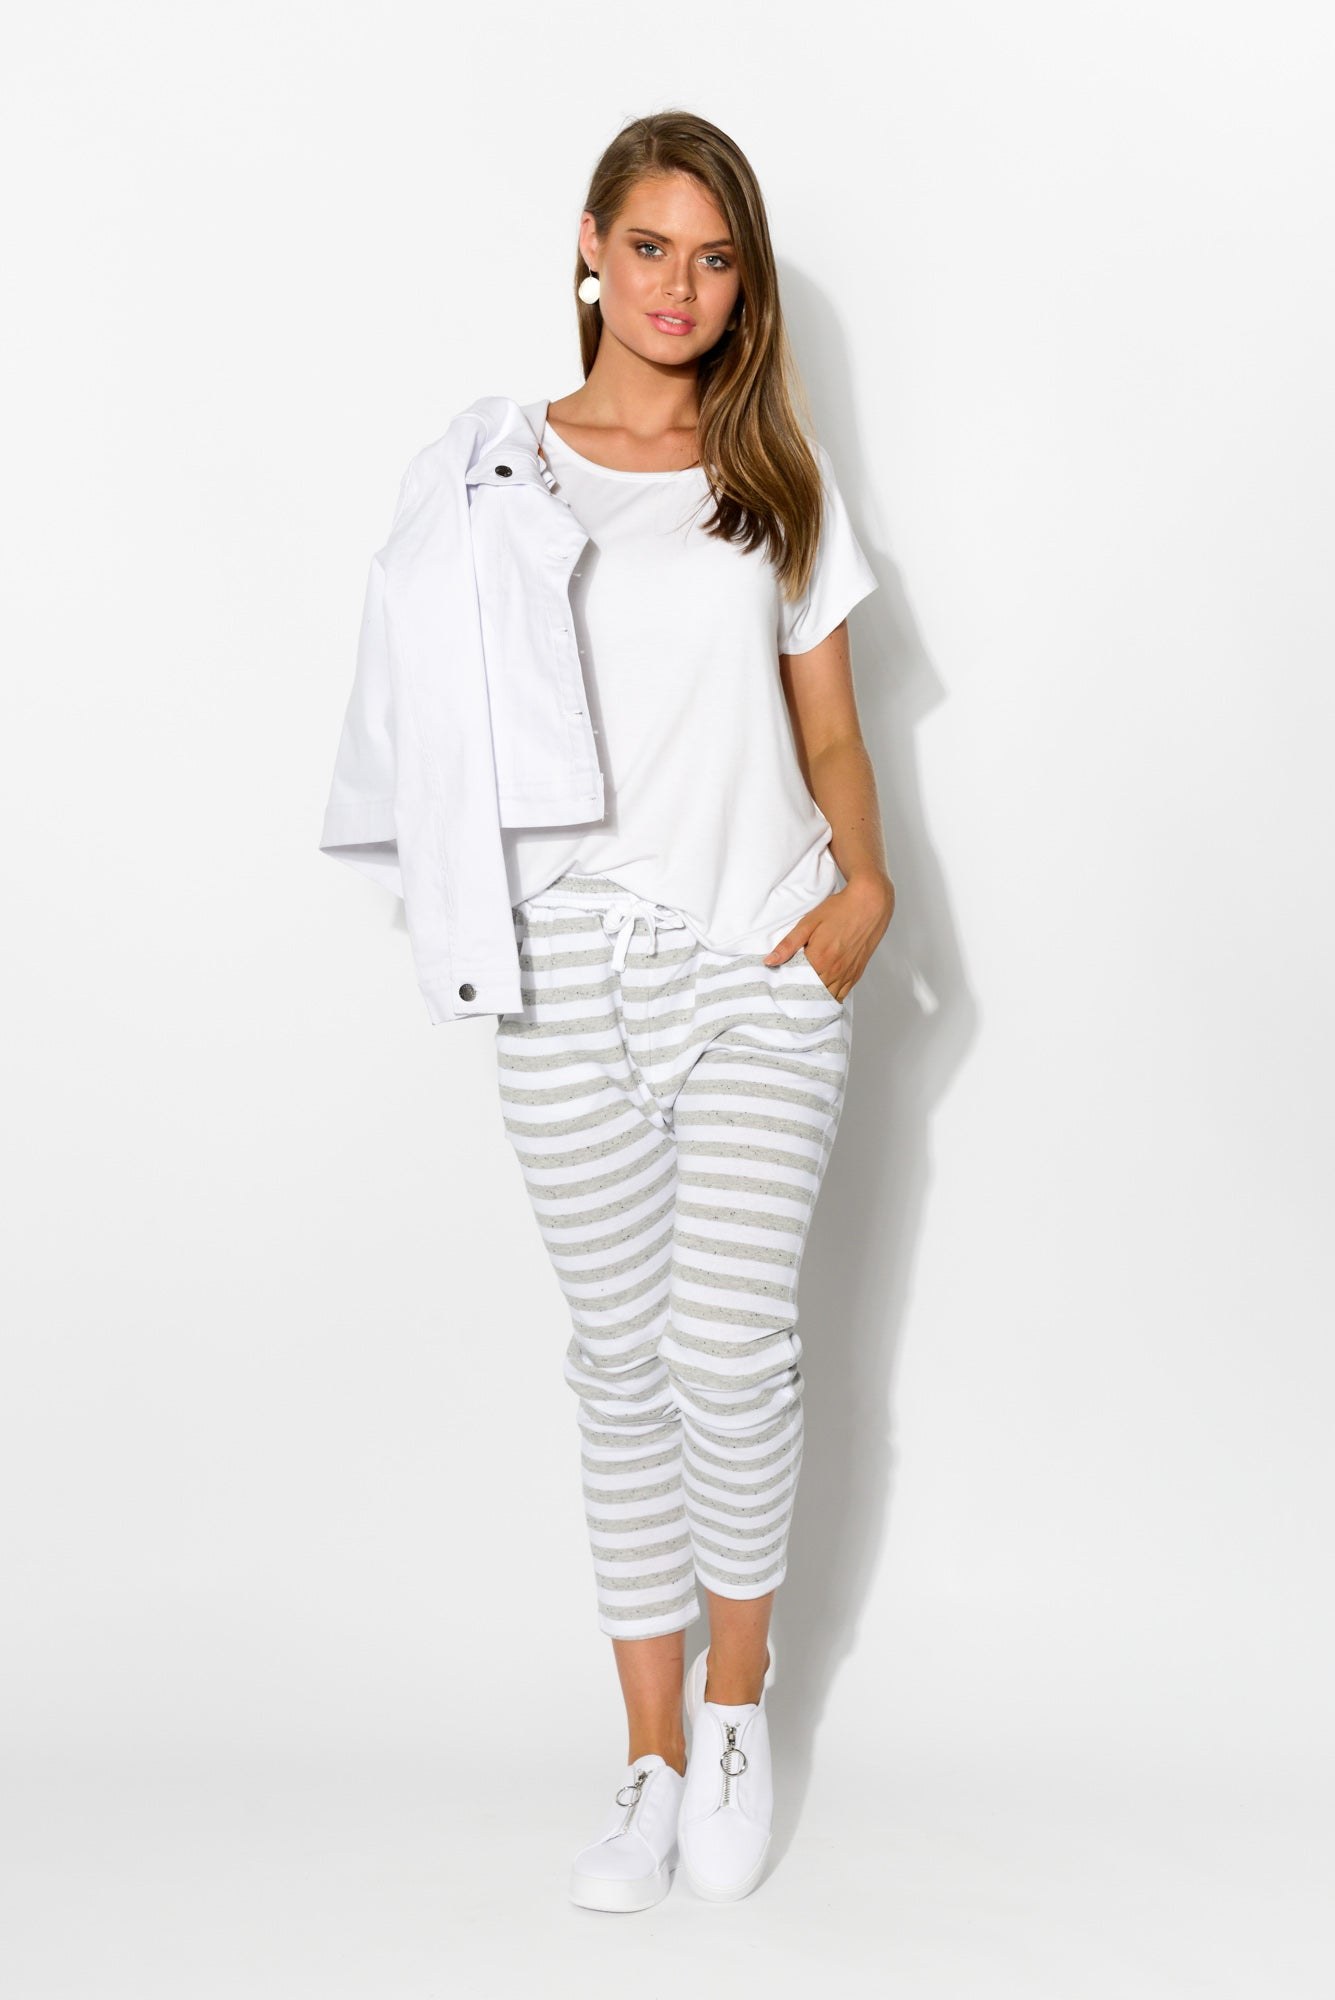 Saxon Grey Stripe Sweat Pant - Blue Bungalow